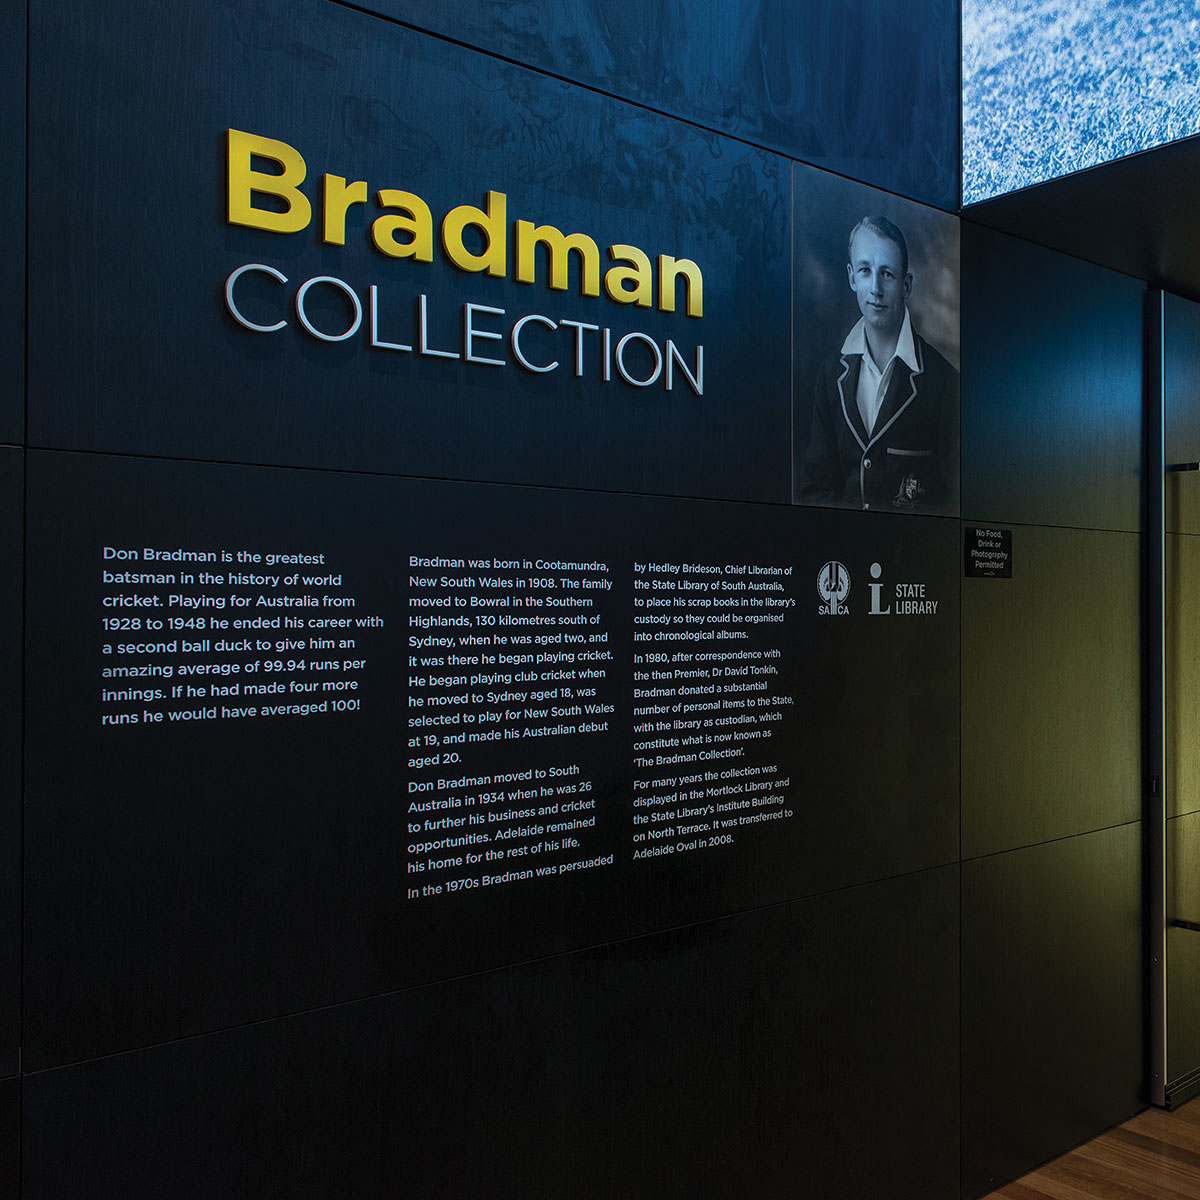 The entrance to the Bradman Collection